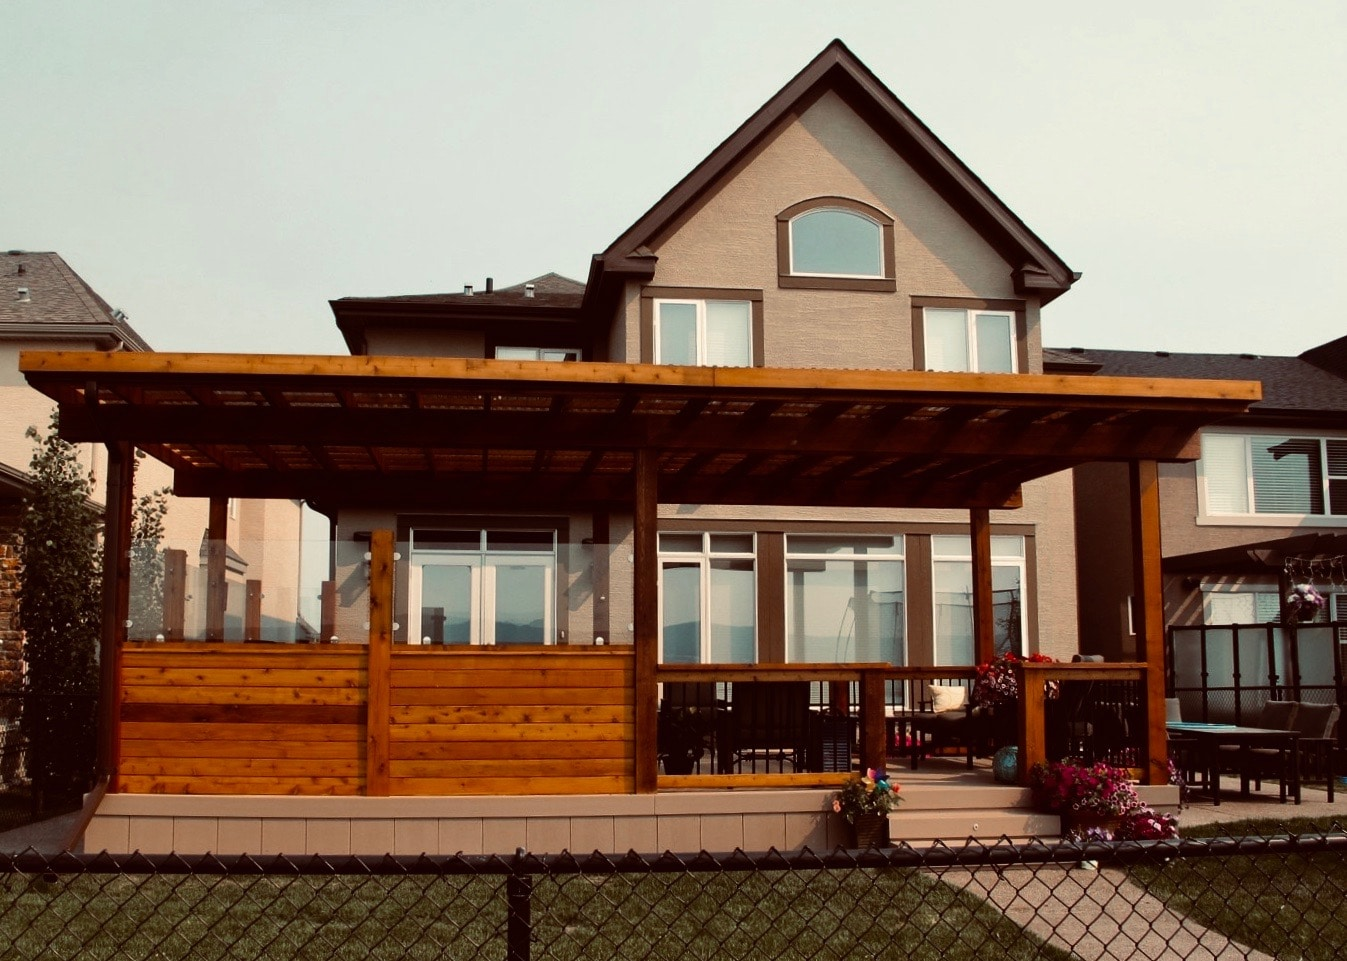 Pergola and deck combining both cedar decking and composite decking boards